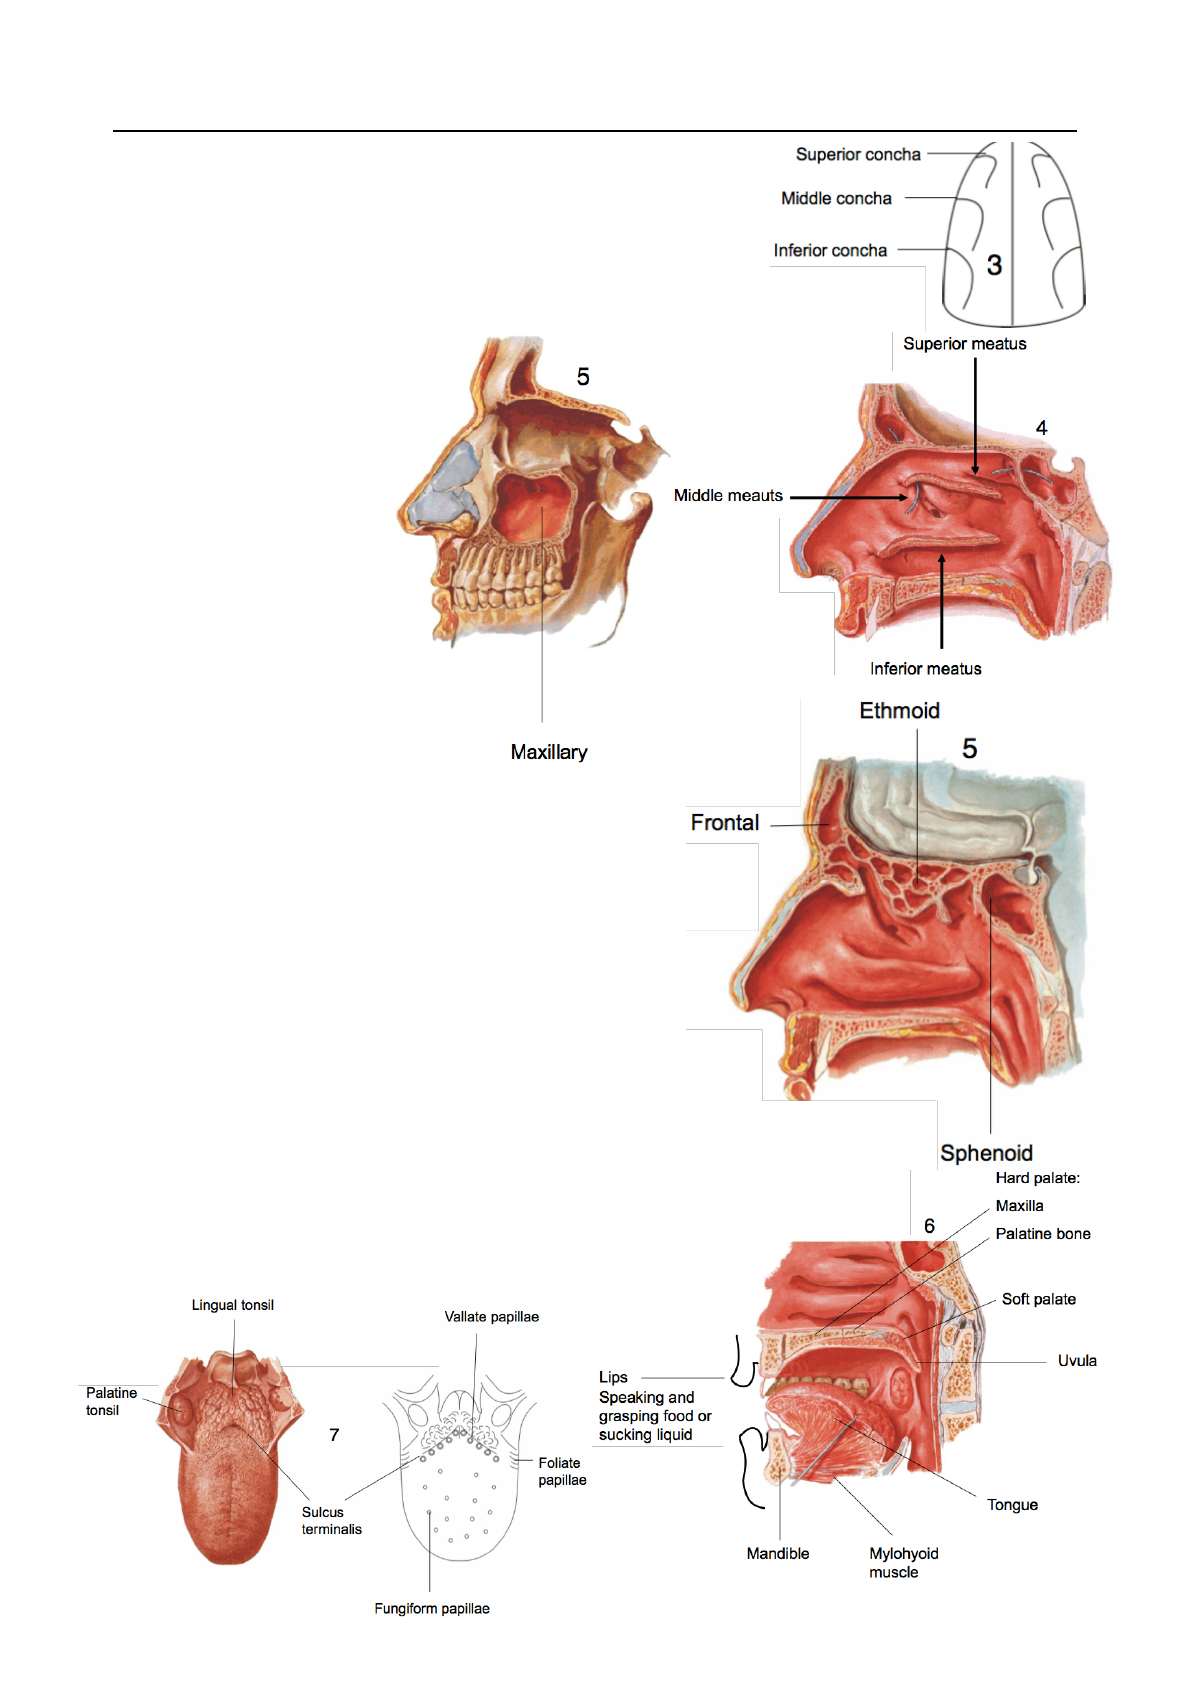 ANAT20006 Lecture Notes - Winter 2017, Lecture 22 - Nasal ... Inferior Meatus Function